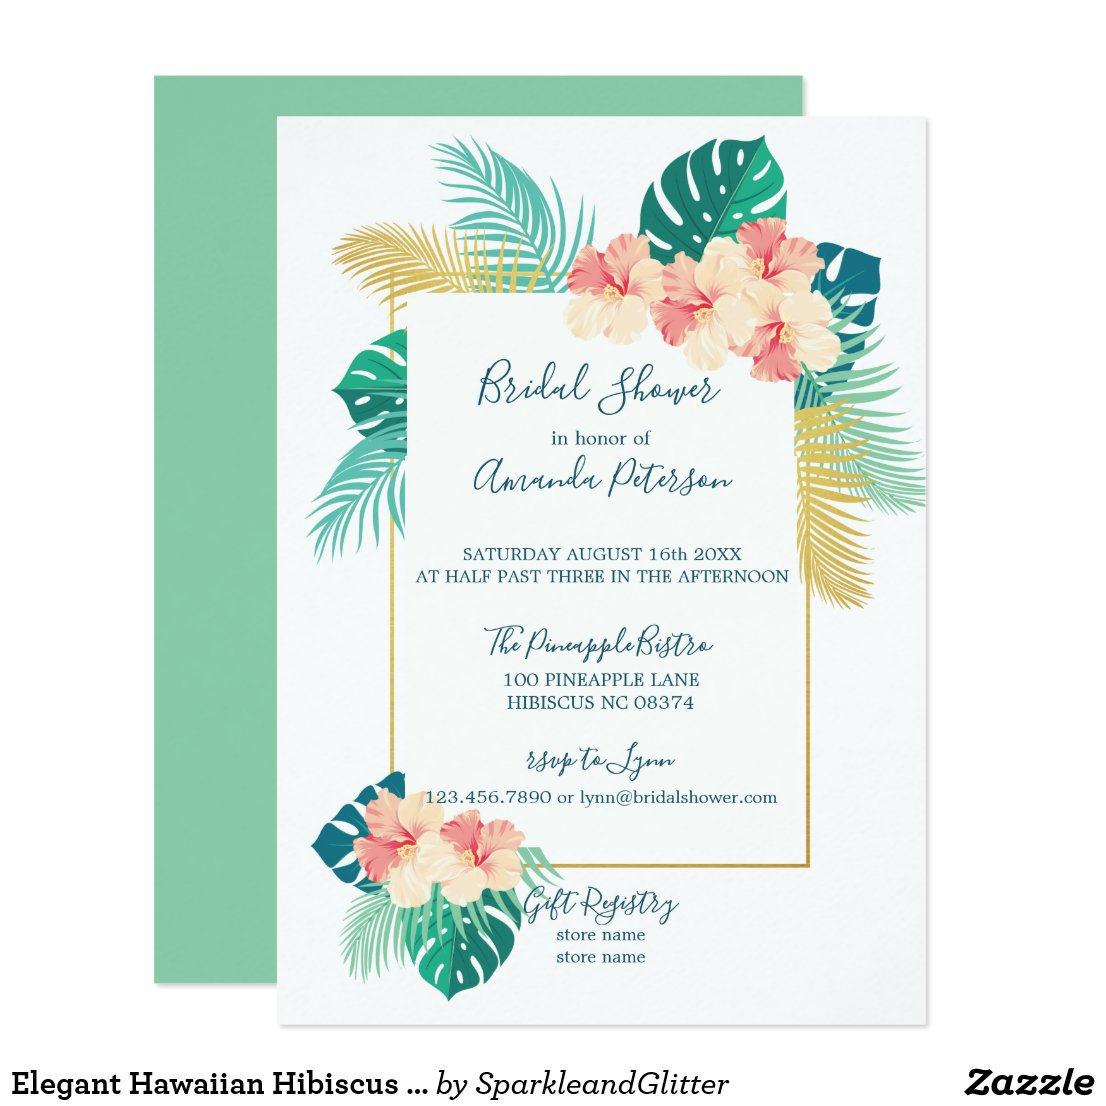 Elegant Hawaiian Hibiscus Bridal Shower Invitation